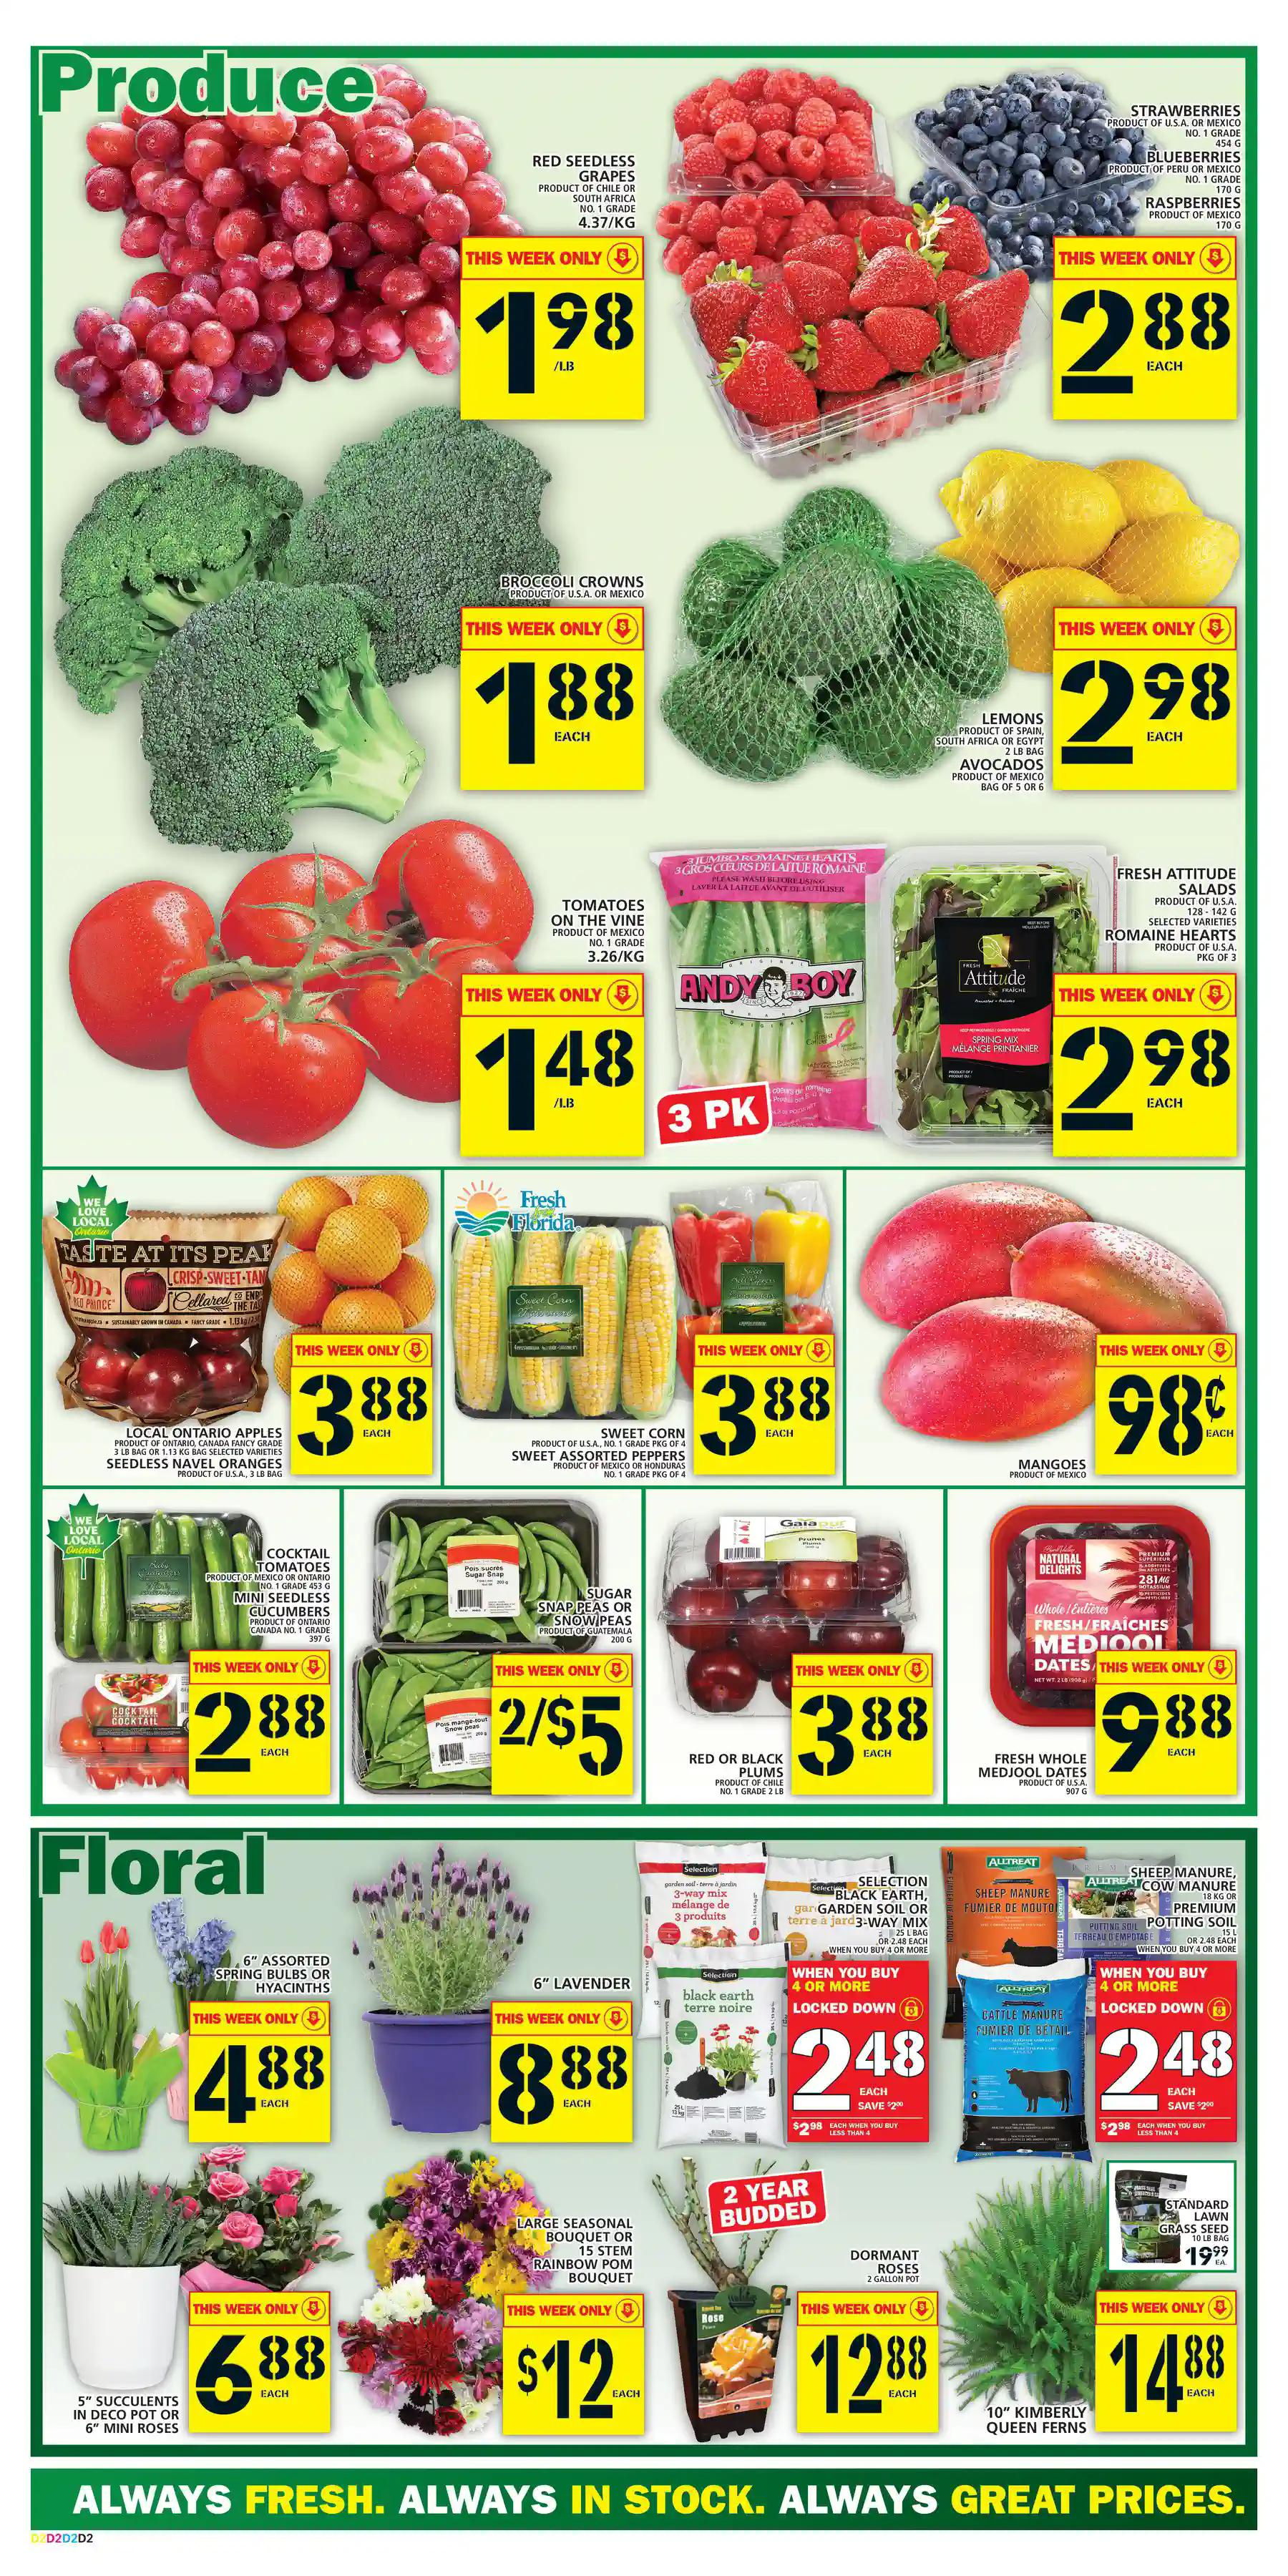 Food Basics - Weekly Flyer Specials - Page 3